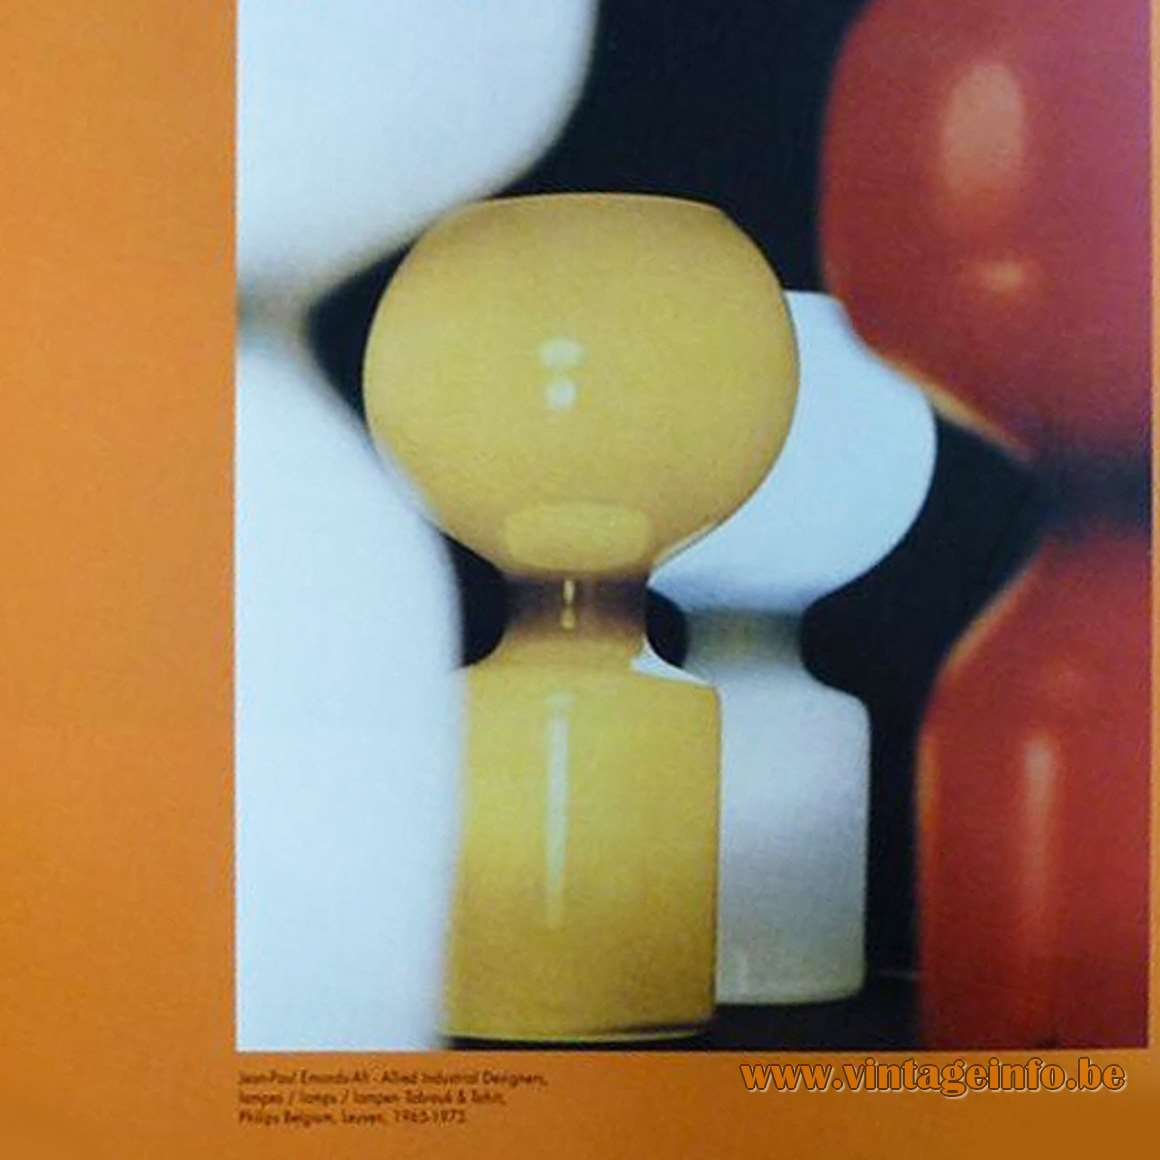 Philips Tobrouk Table Lamps catalogue picture designer: Jean-Paul Emonds-Alt